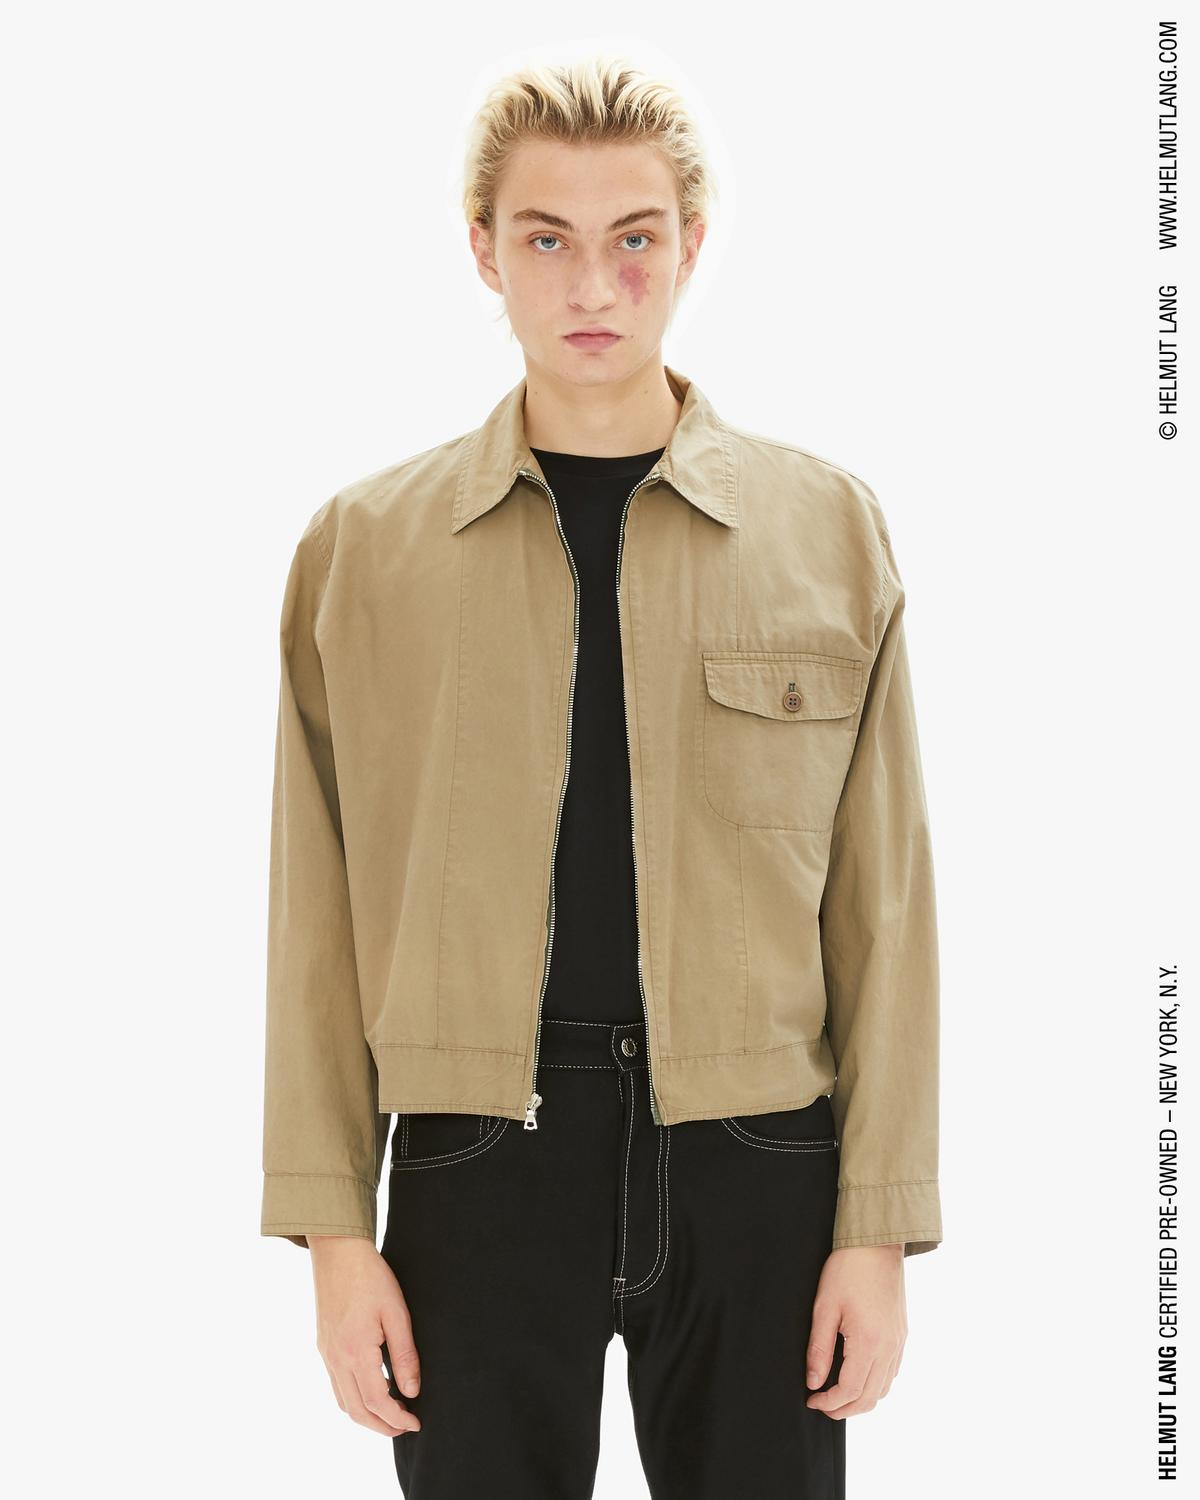 Zip Blouson with patch pocket